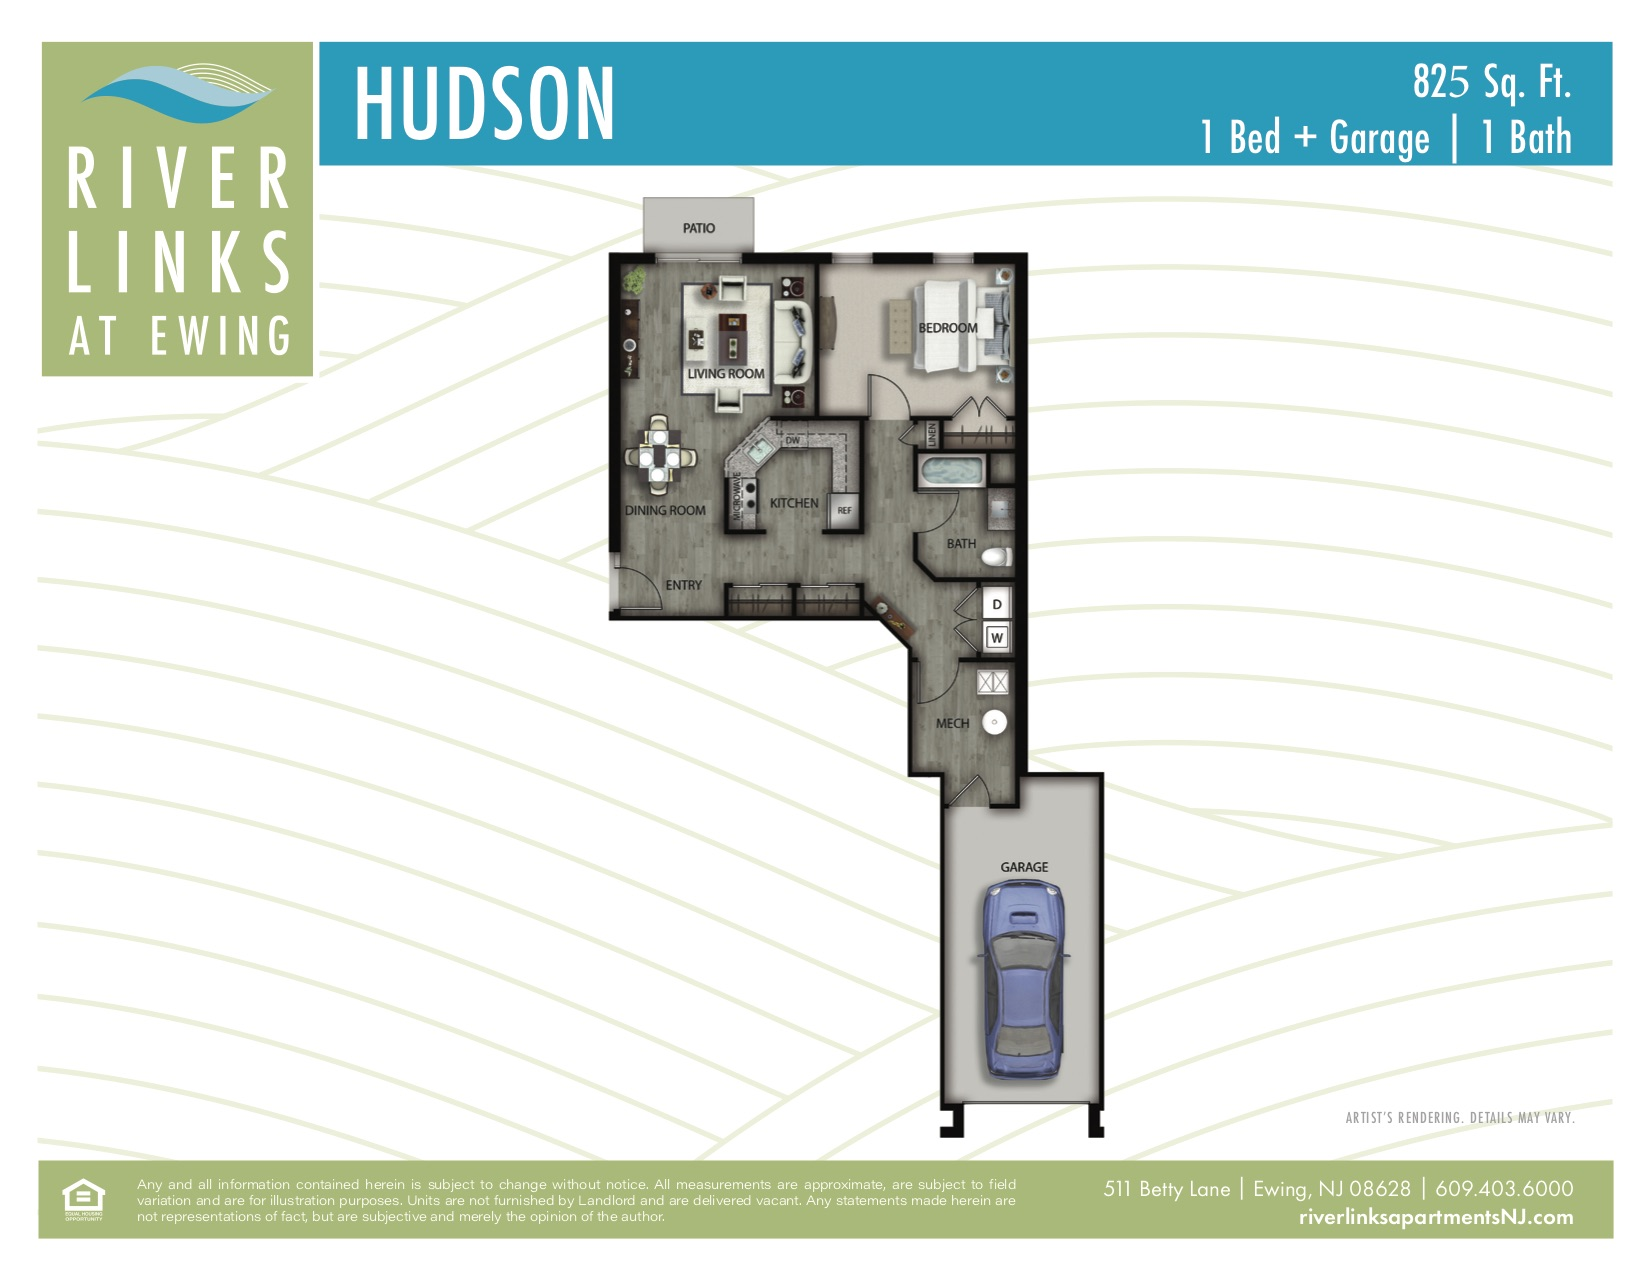 Hudson - 1 Bedroom/1 Bath + Garage